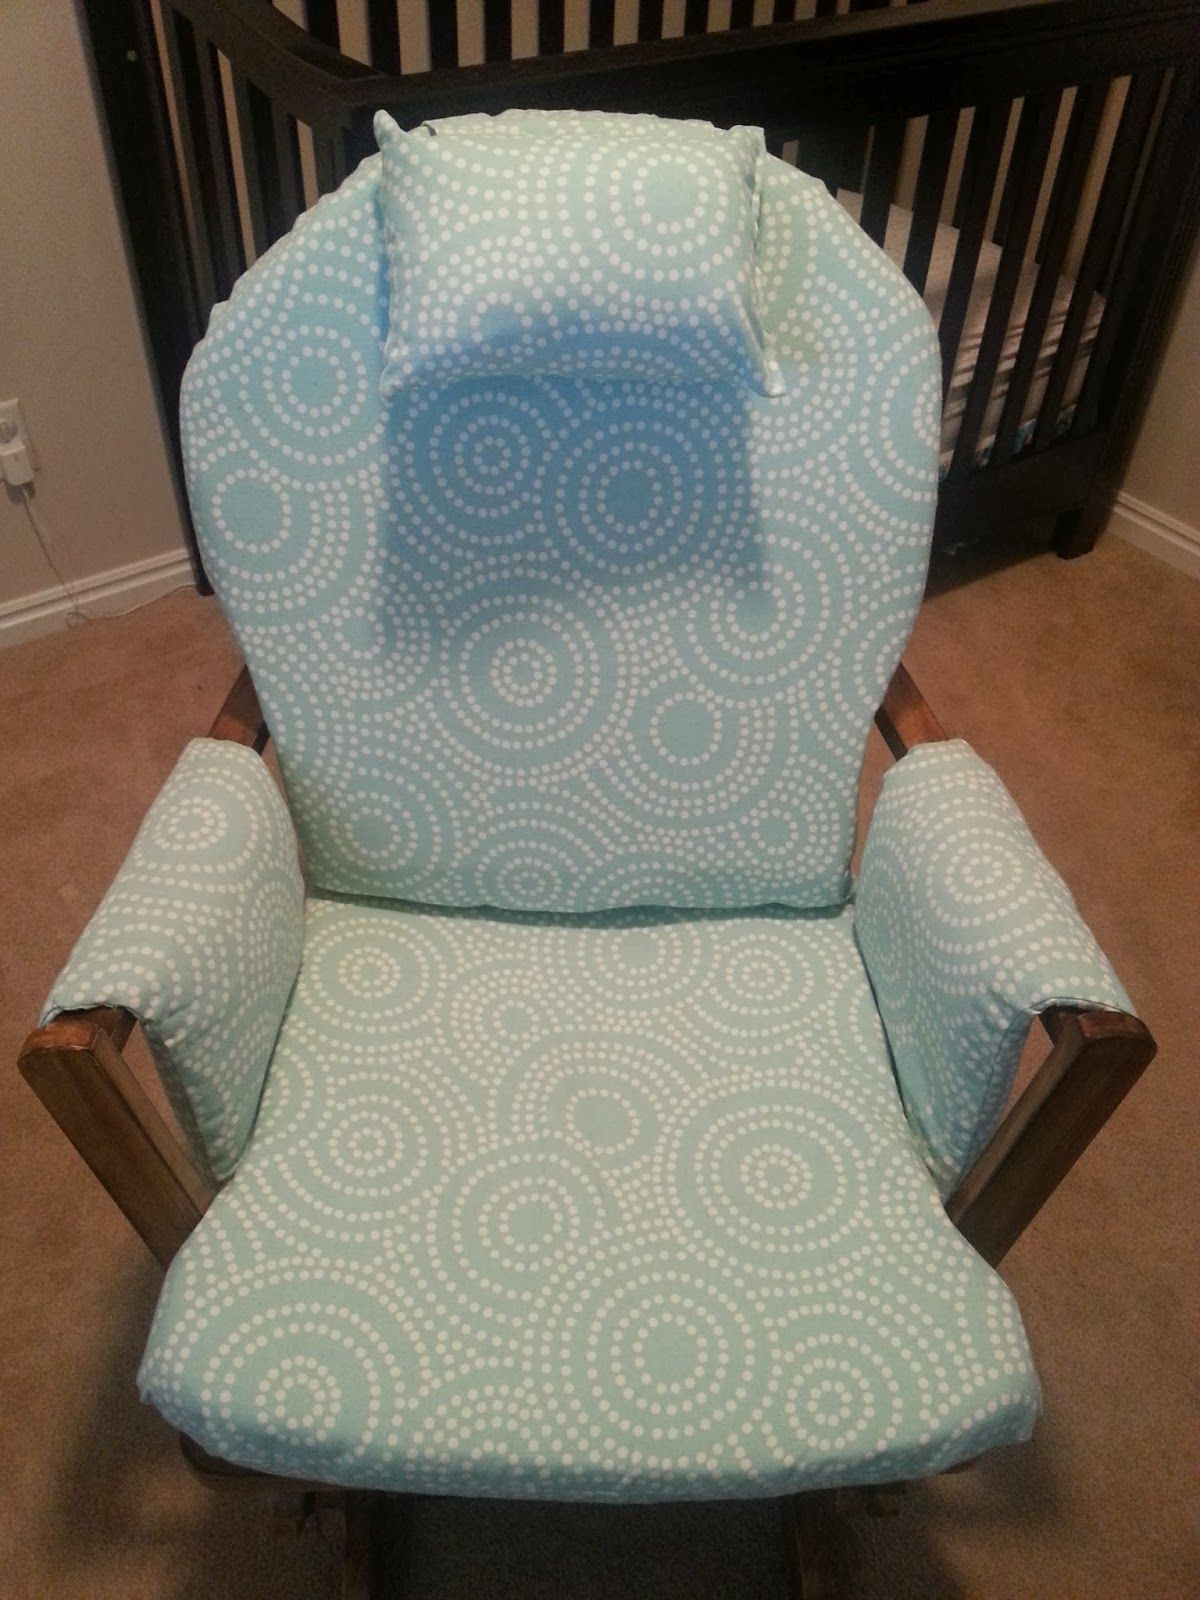 How To Recover Glider Rocking Chair Cushions Alera Elusion Singapore And Stain An Old I Got This One For